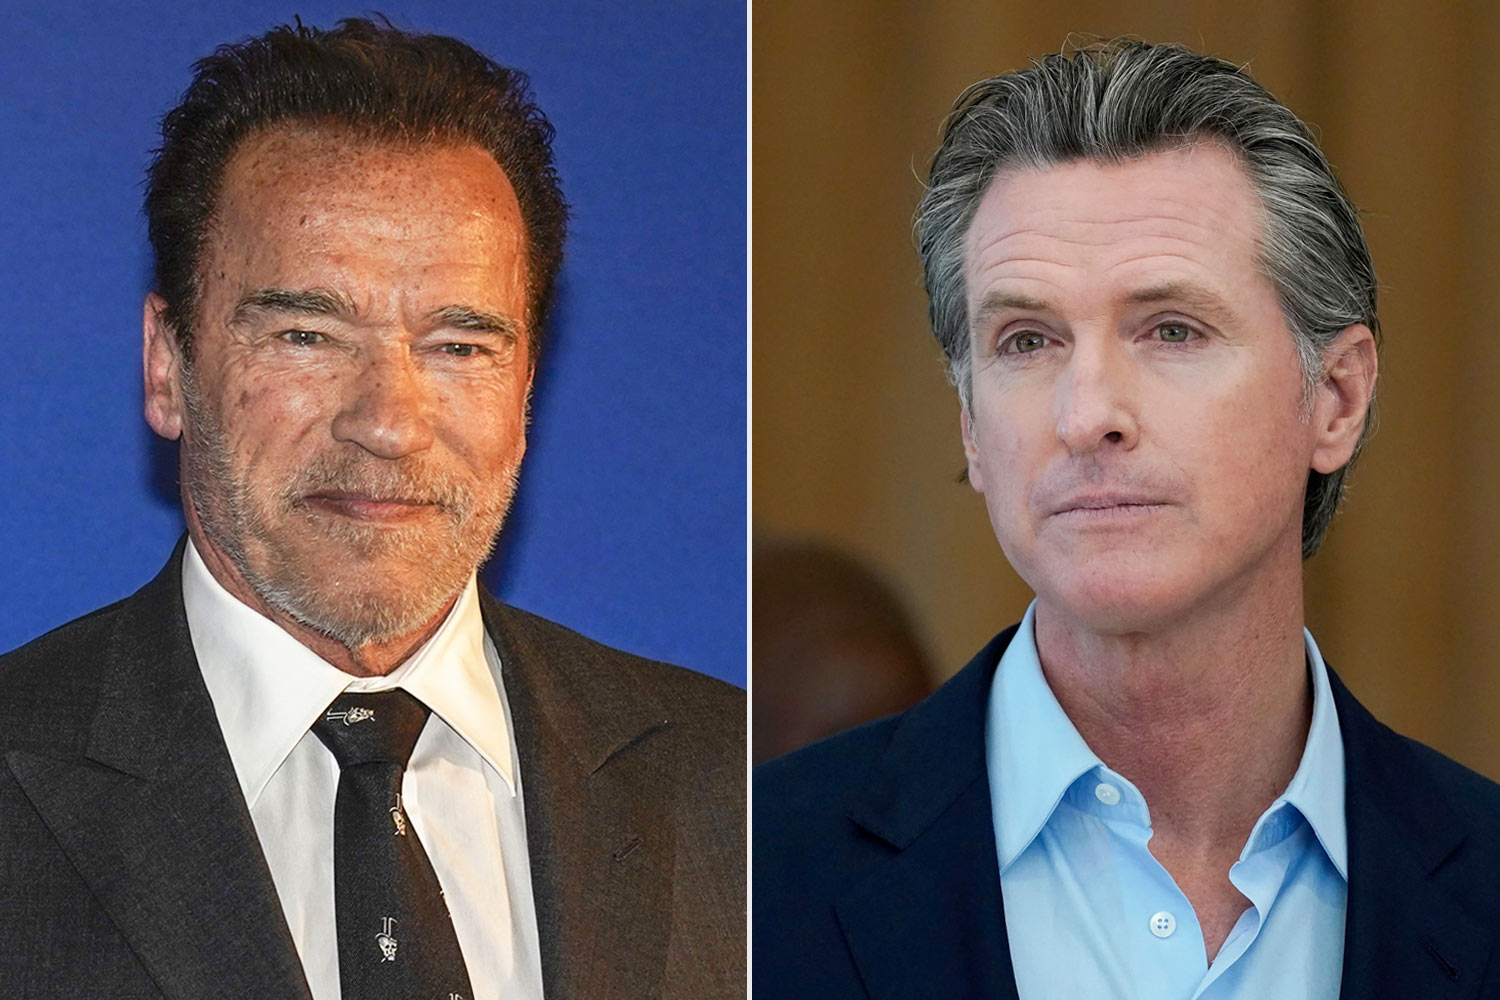 Arnold Schwarzenegger and gavin newsom